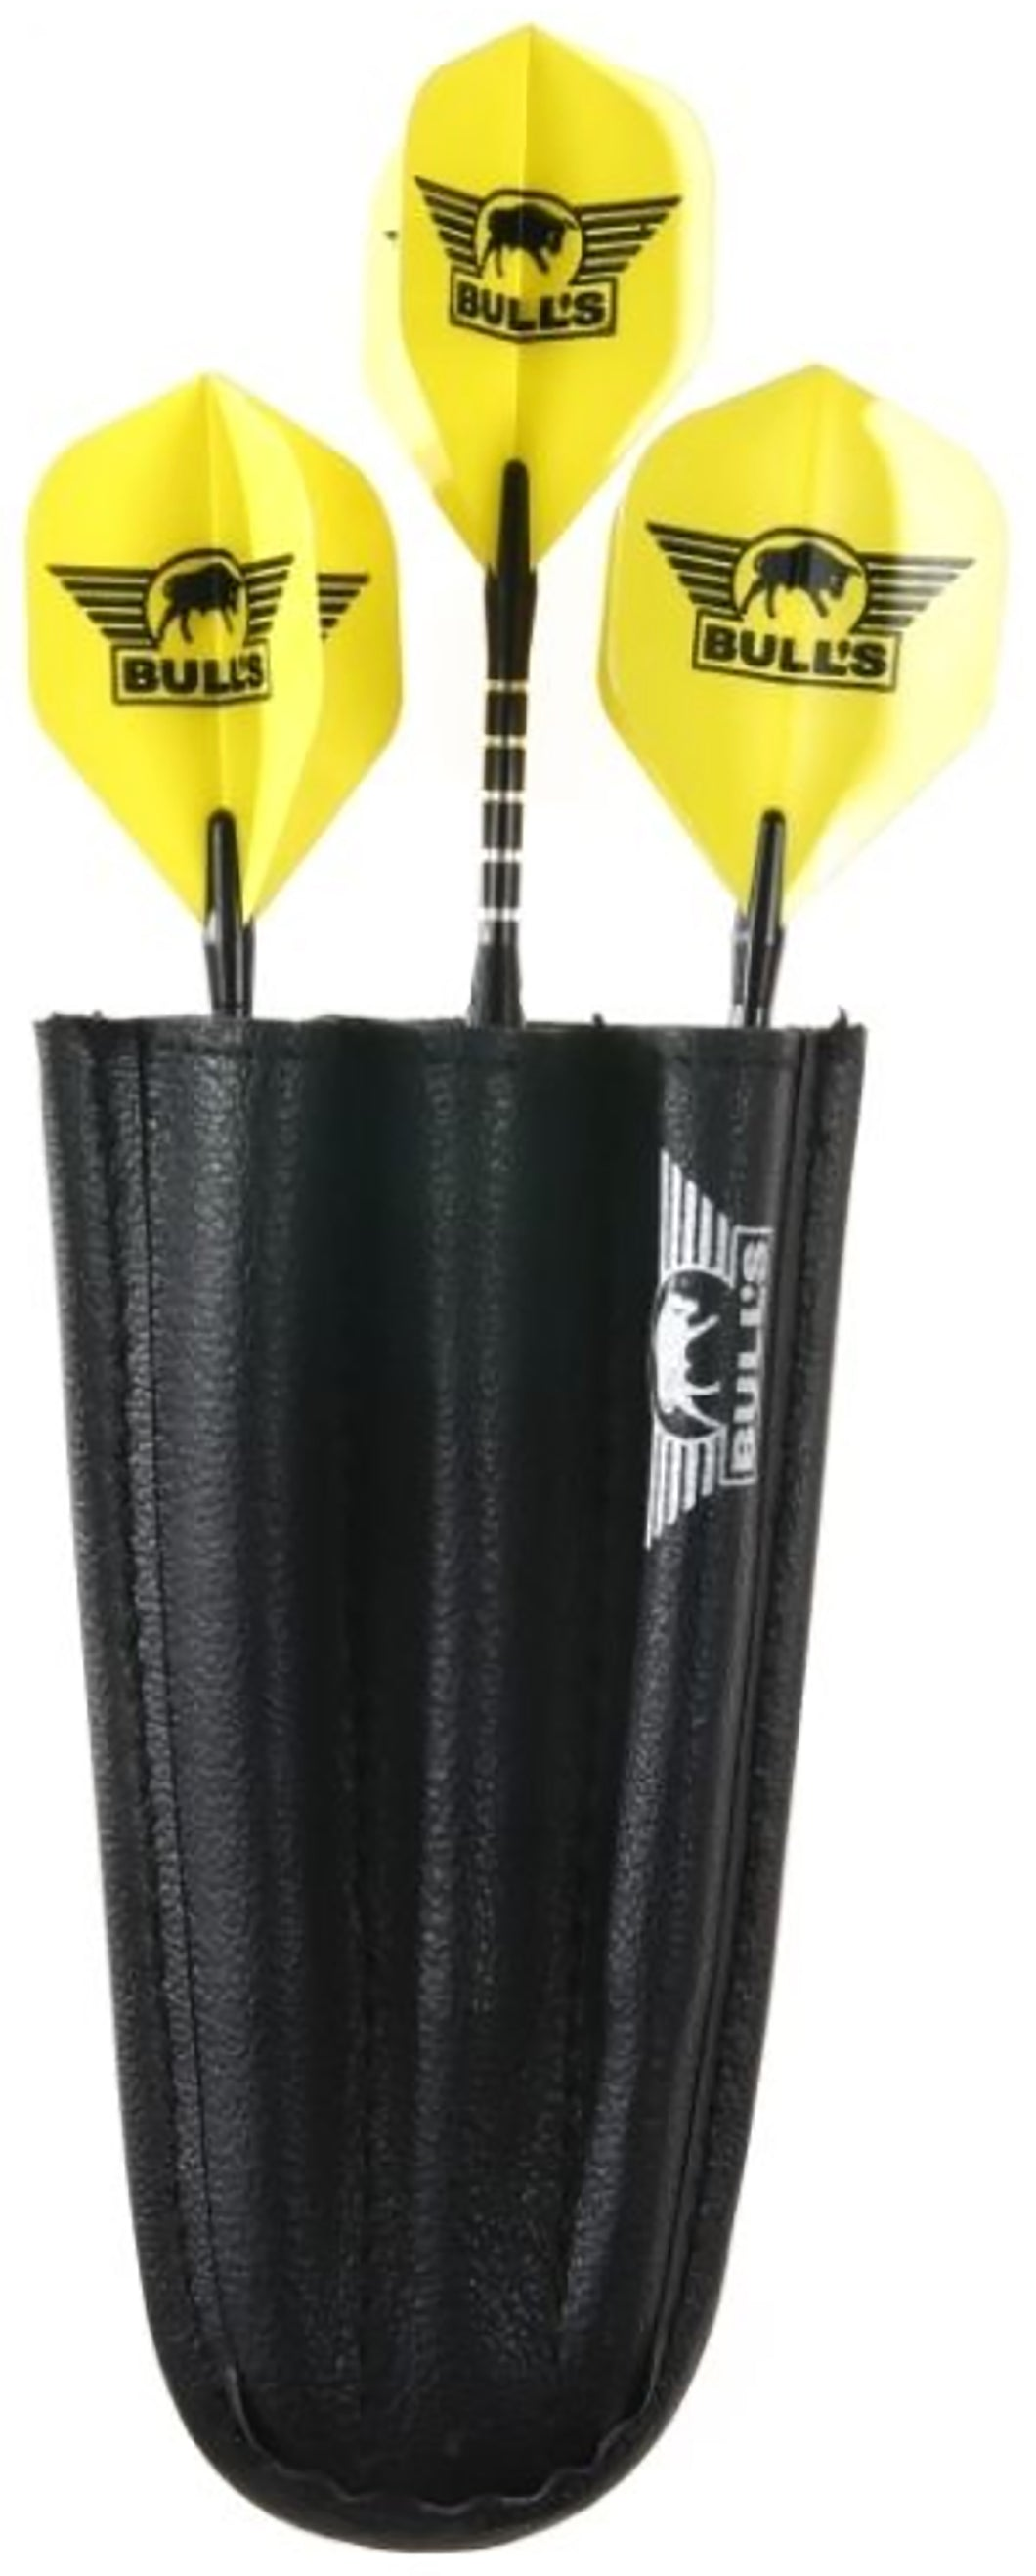 Bulls Keycord Wallet - Handy Pocket Size Dart Case - Black